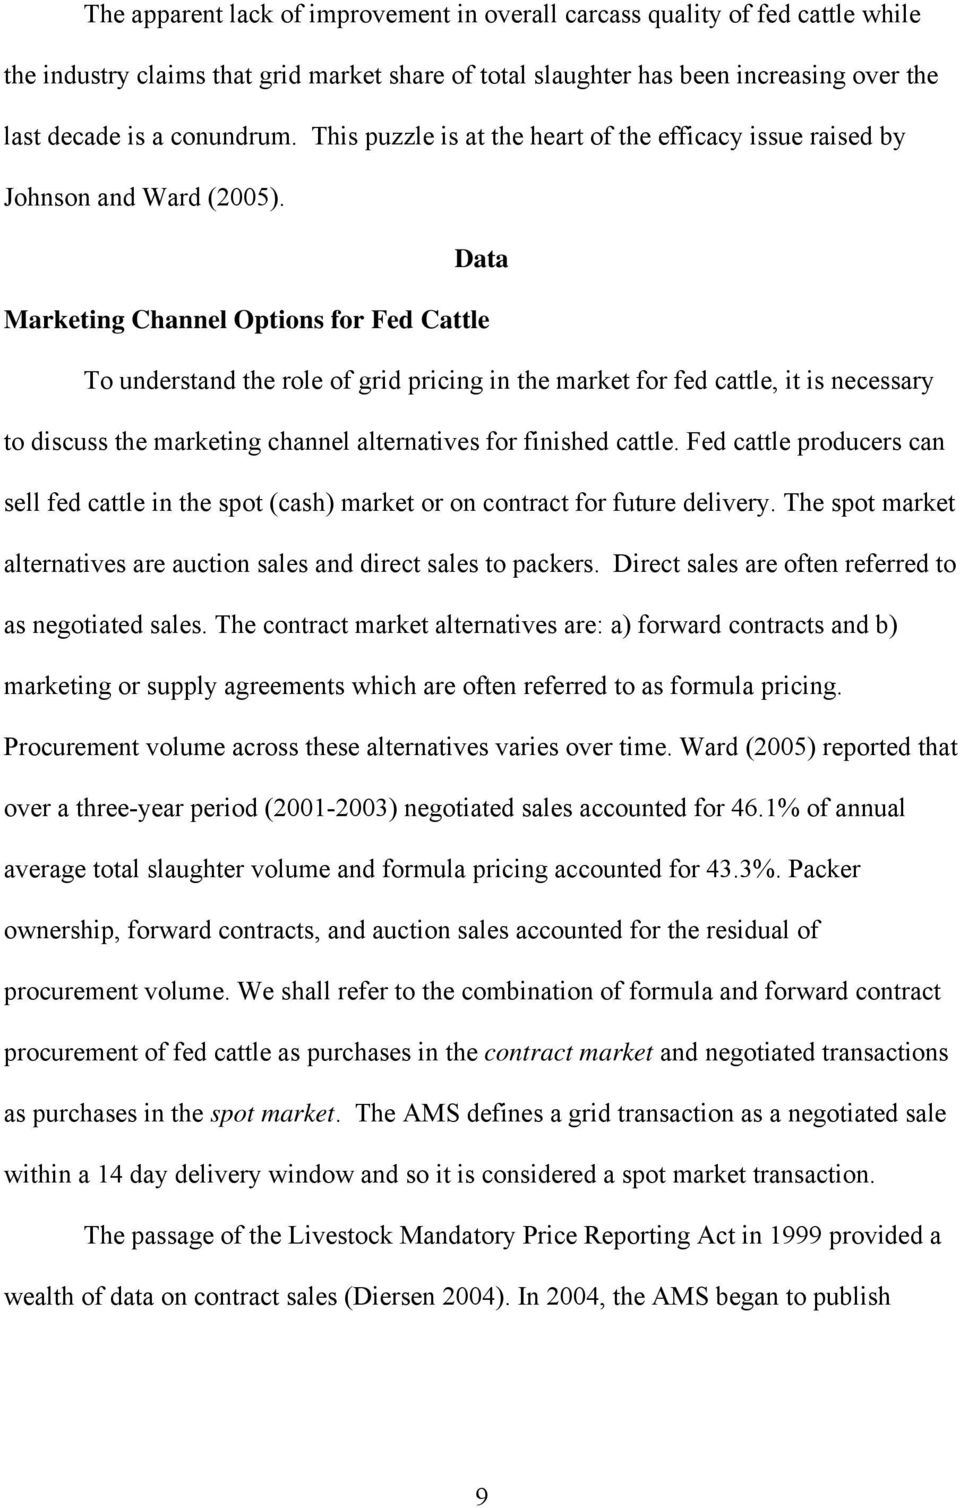 Data Marketing Channel Options for Fed Cattle To understand the role of grid pricing in the market for fed cattle, it is necessary to discuss the marketing channel alternatives for finished cattle.